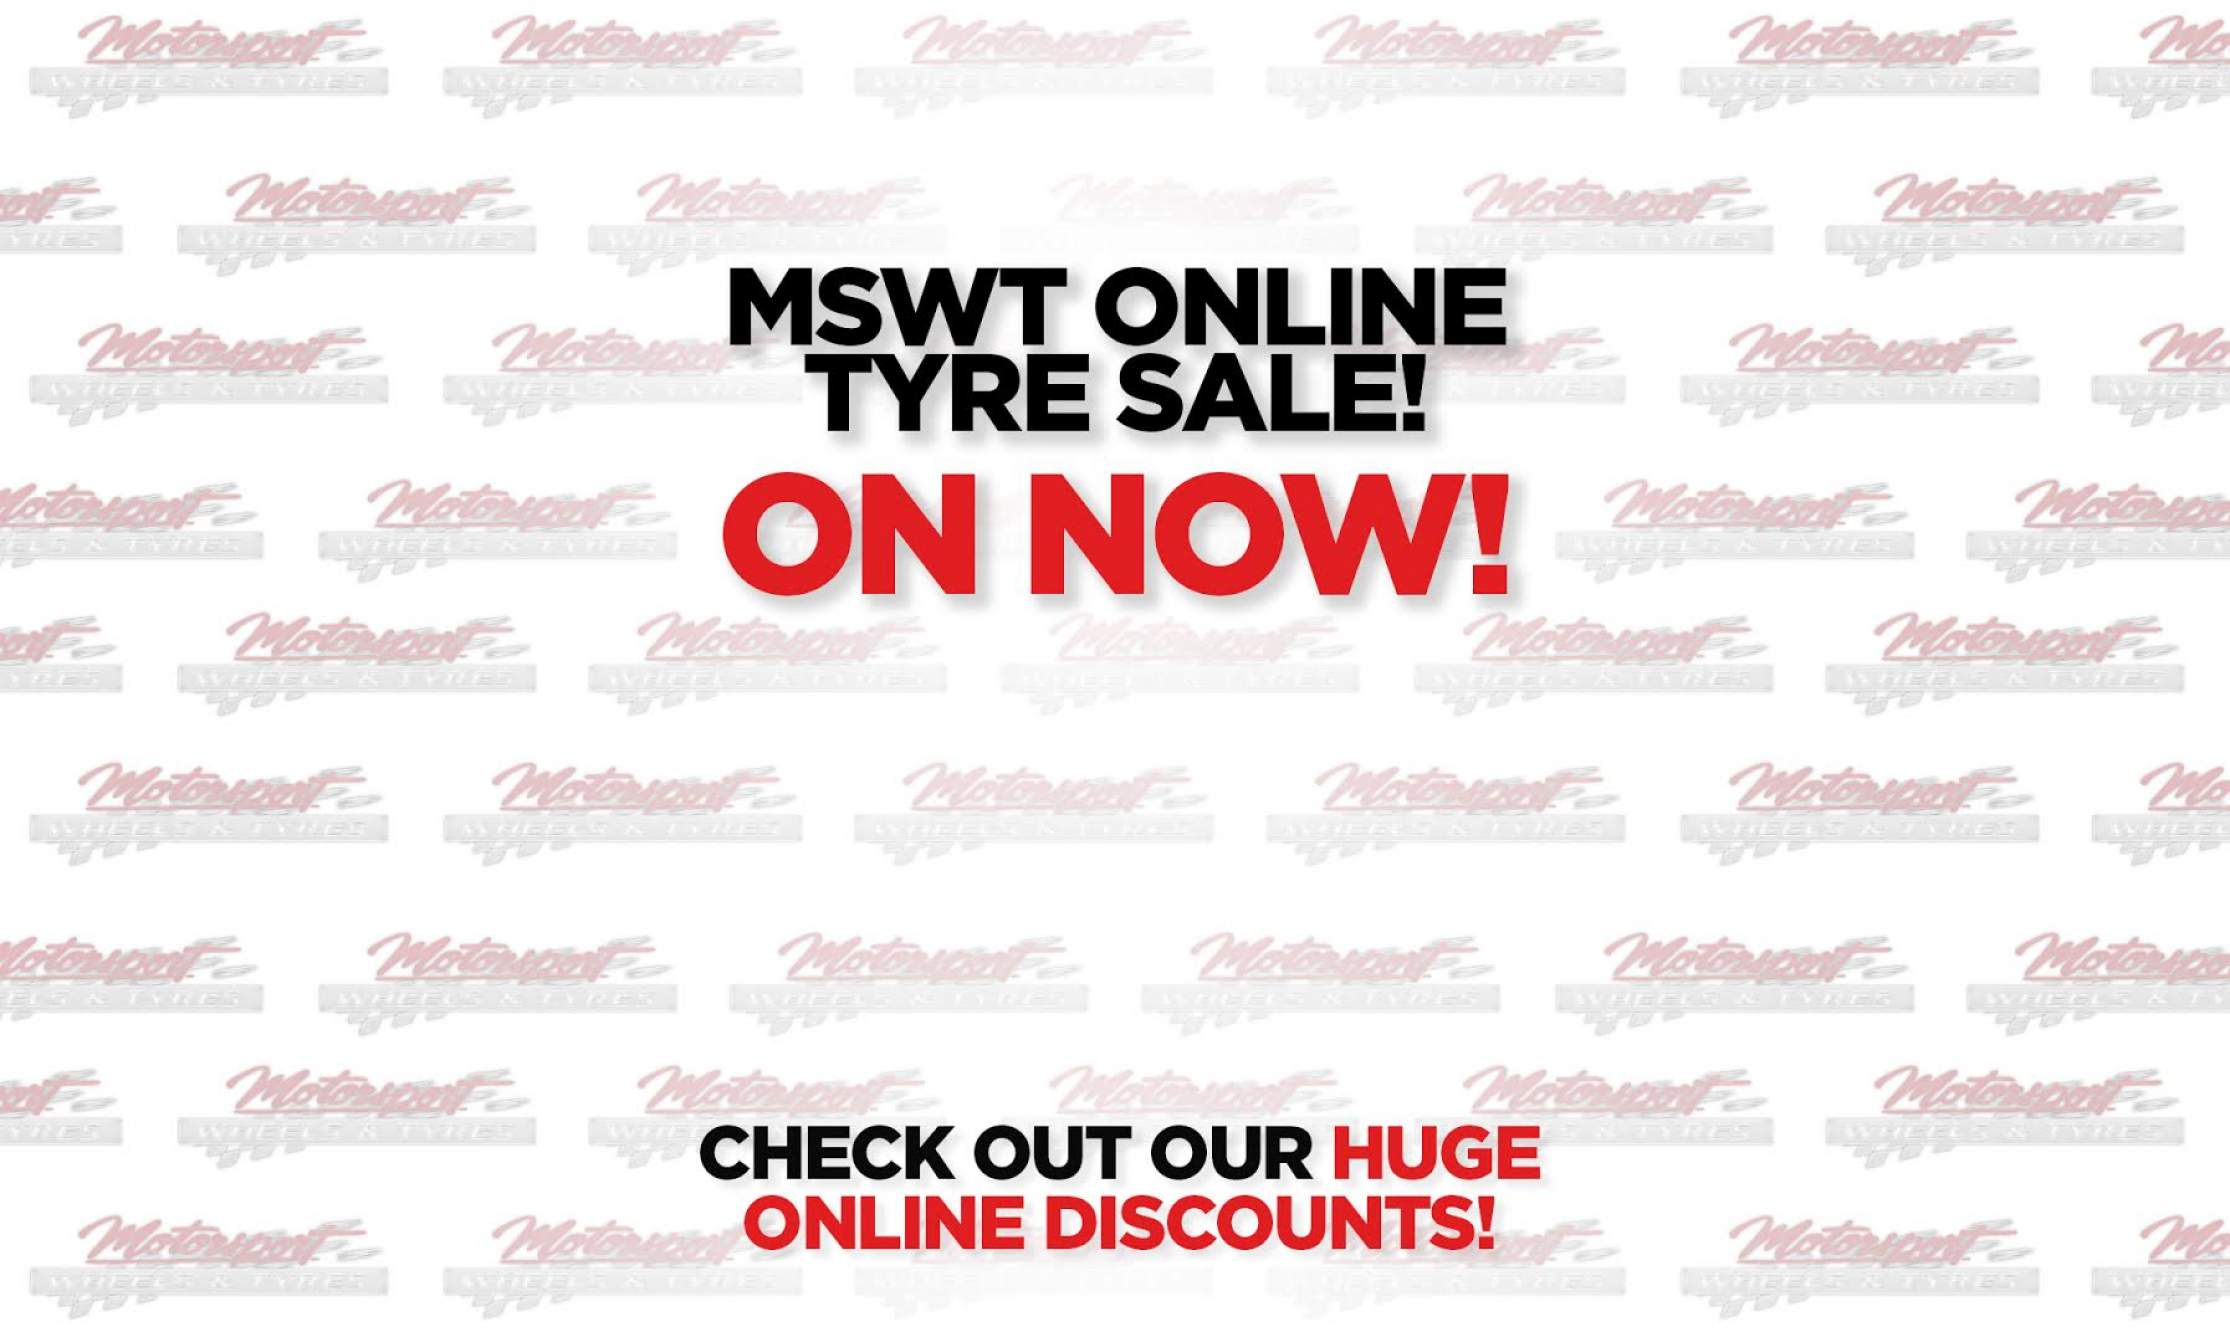 2016-08-04 MSWT ONLINE TYRE SALE ON NOW